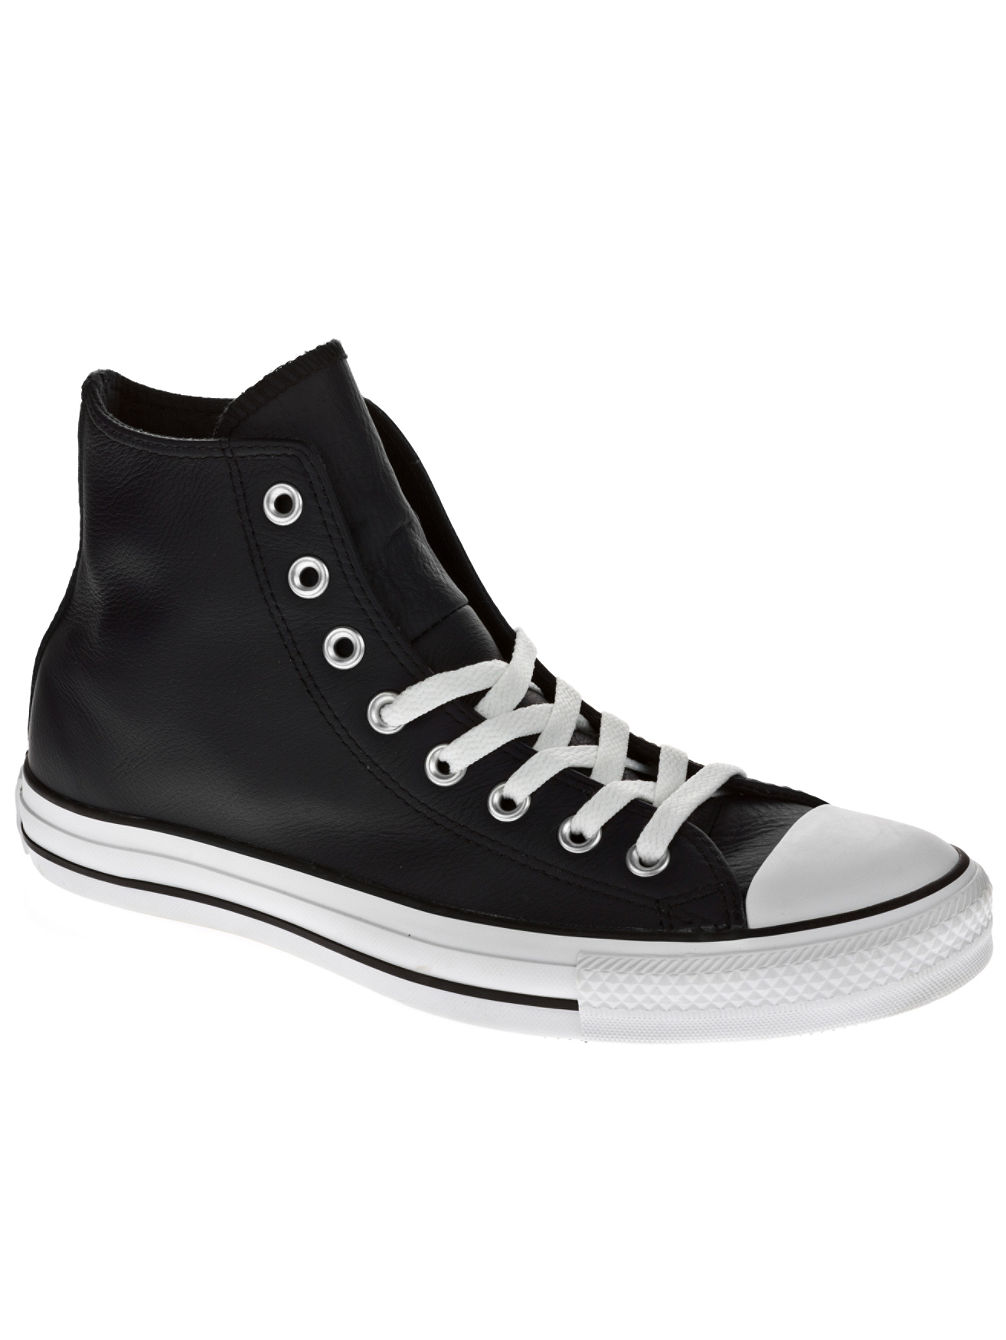 Sneakers Converse Chuck Taylor All Star Hi Leather Sneaker